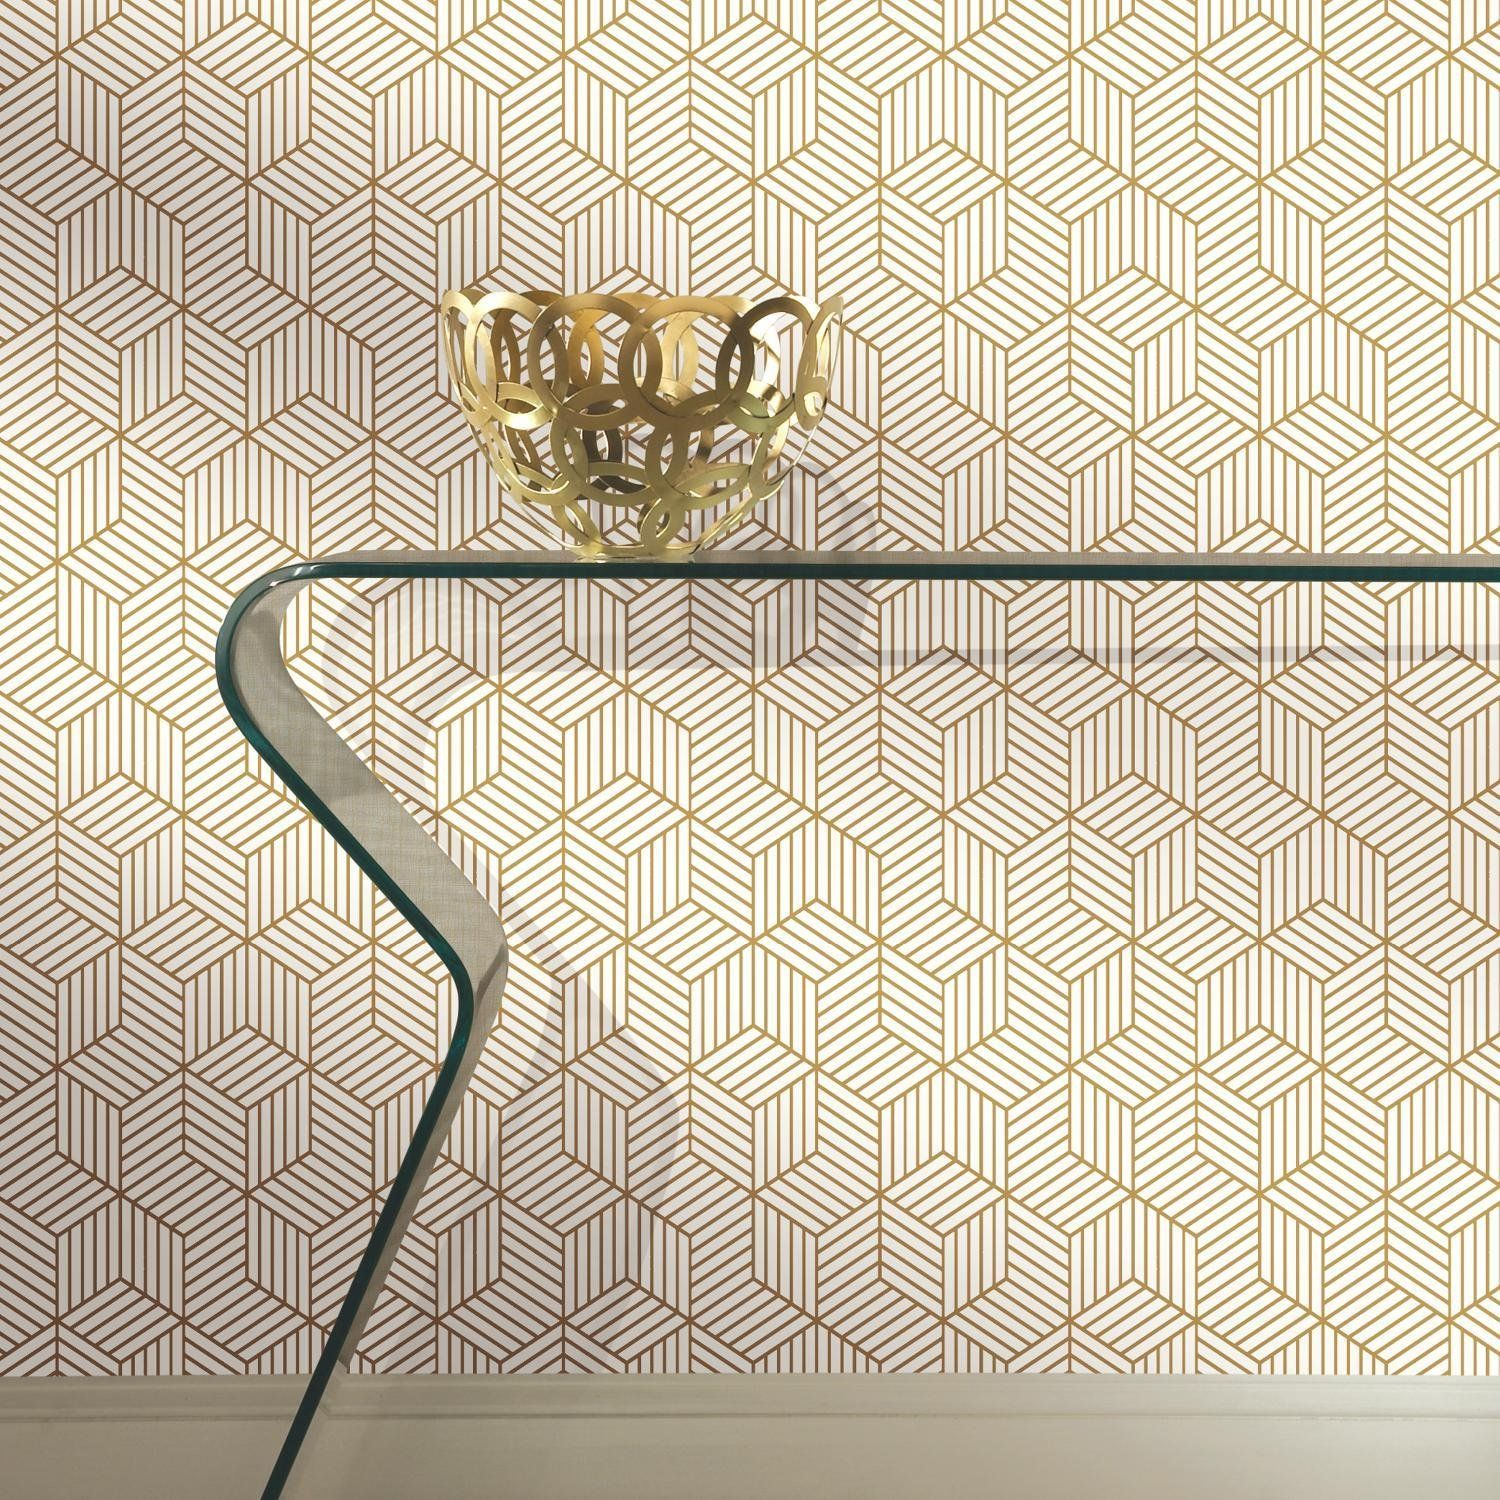 Roommates Rmk10704wp Stripped Hexagon Peel And Stick Wallpaper 20 5 X 16 5 Feet White G Peel And Stick Wallpaper Mid Century Modern Wallpaper Hexagon Wallpaper